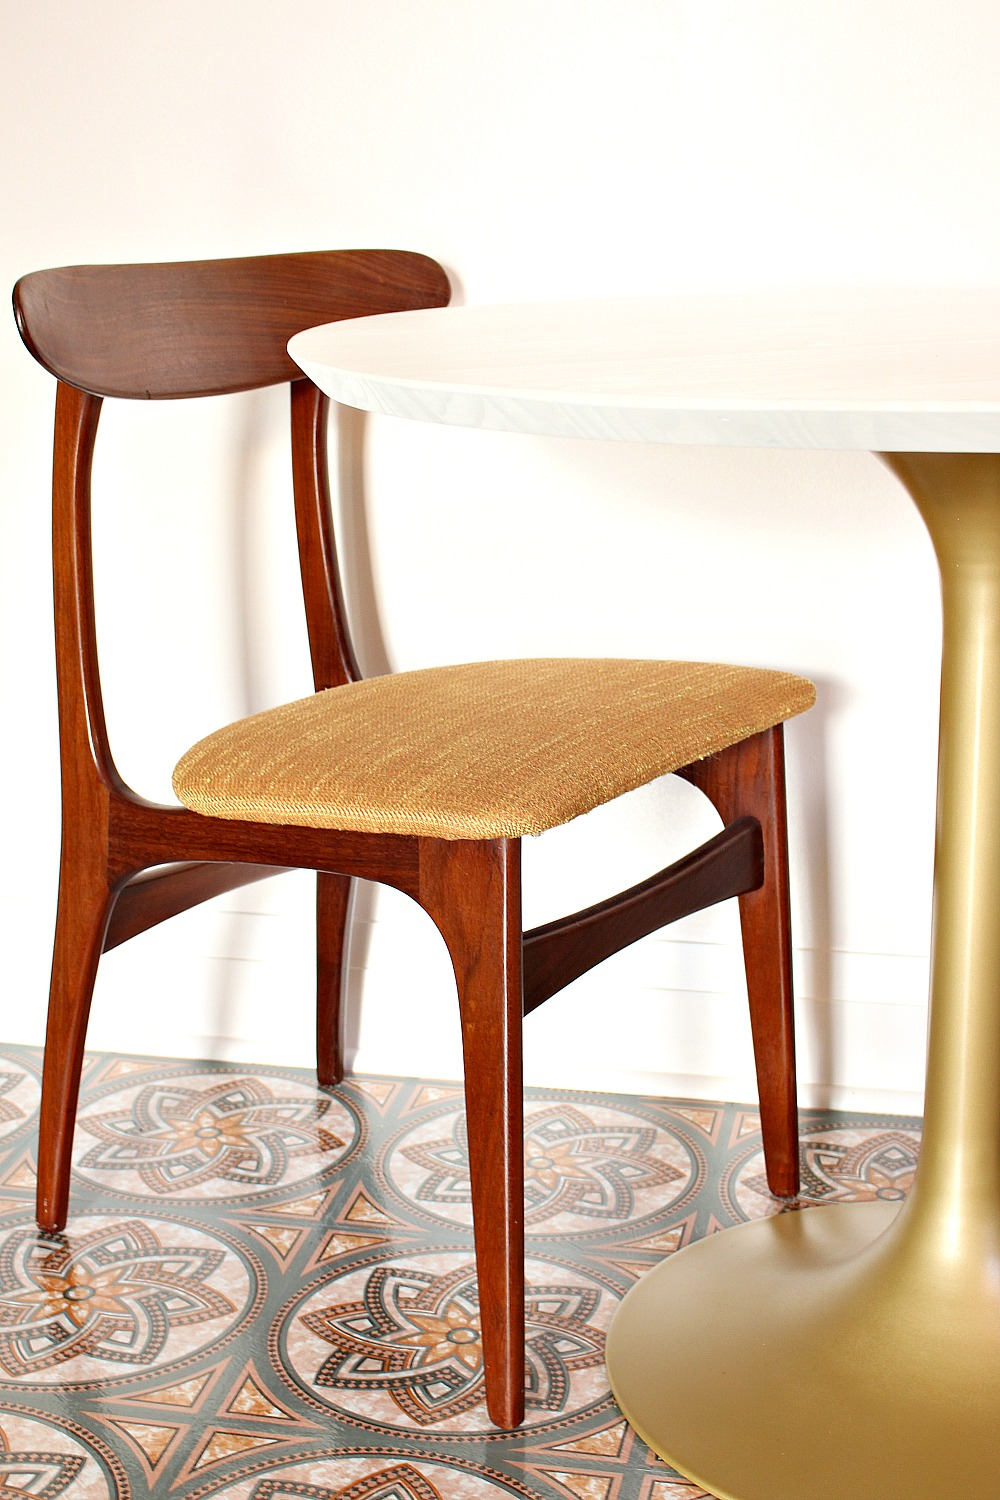 MidCentury Tulip Table Makeover Dans Le Lakehouse - Saarinen table top replacement